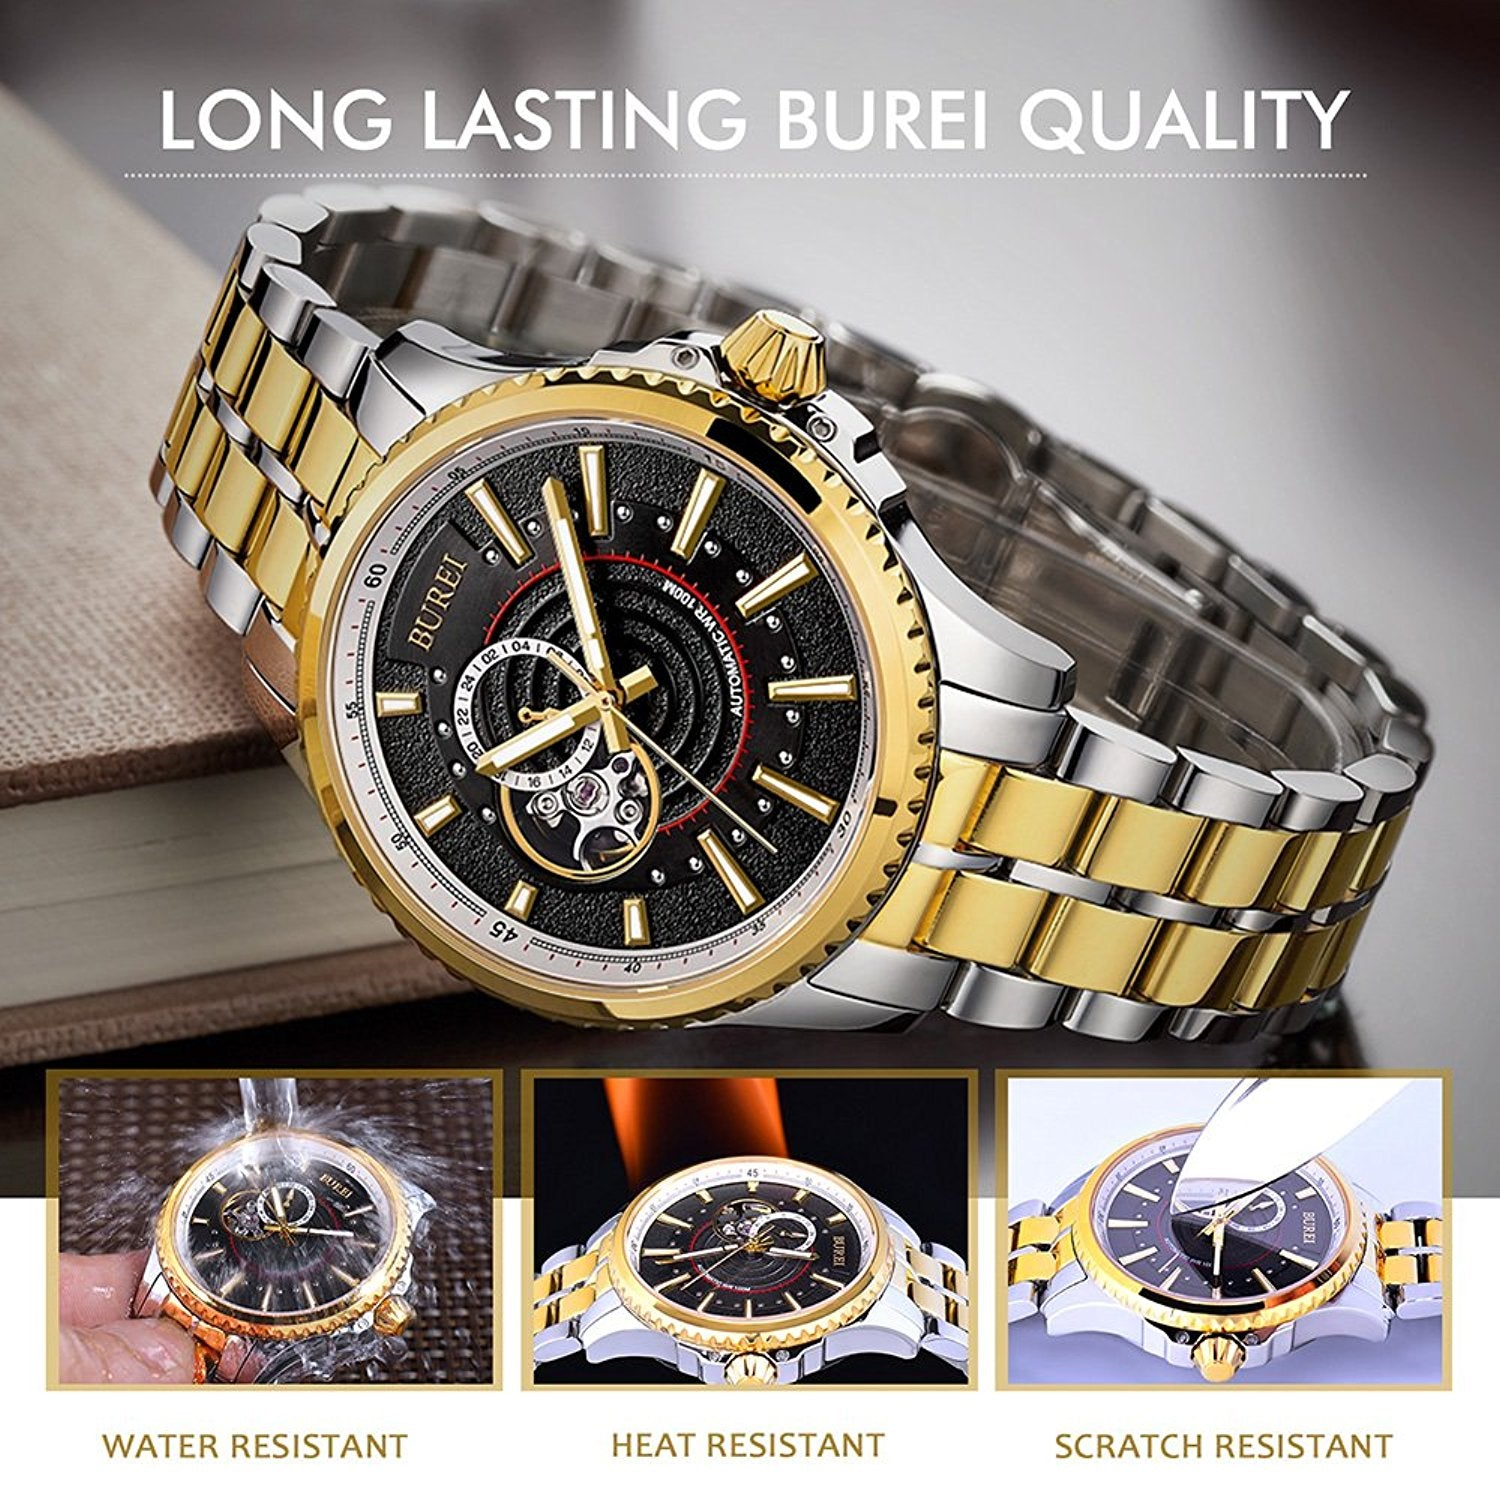 design dp value chain hunter watch quality amazon full vintage wind hand watches com skeleton zodiac shoppewatch mechanical pocket